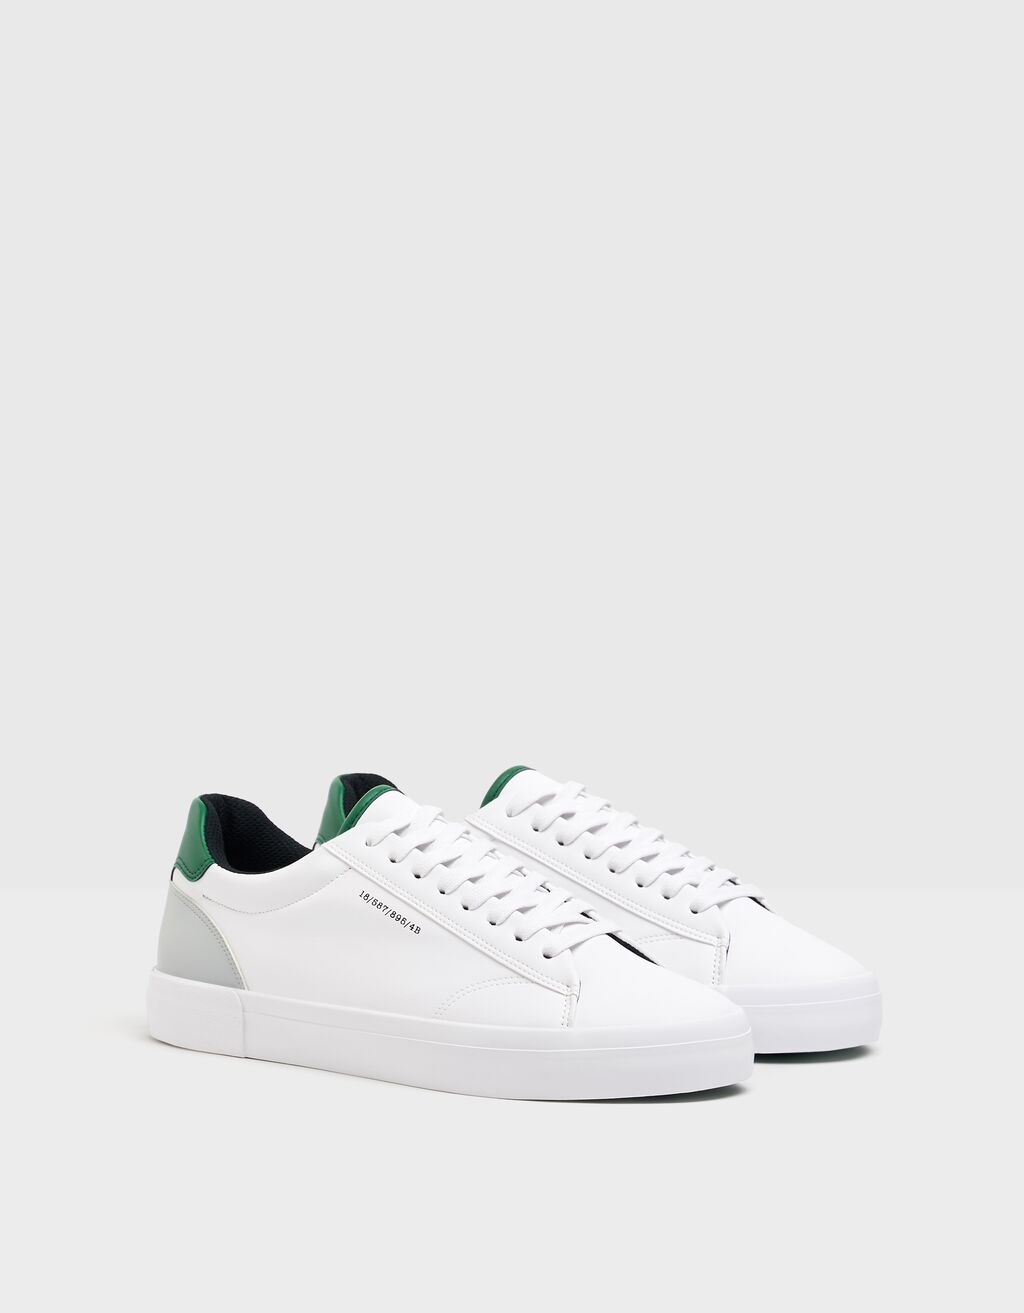 Men's trainers with coloured heel detail